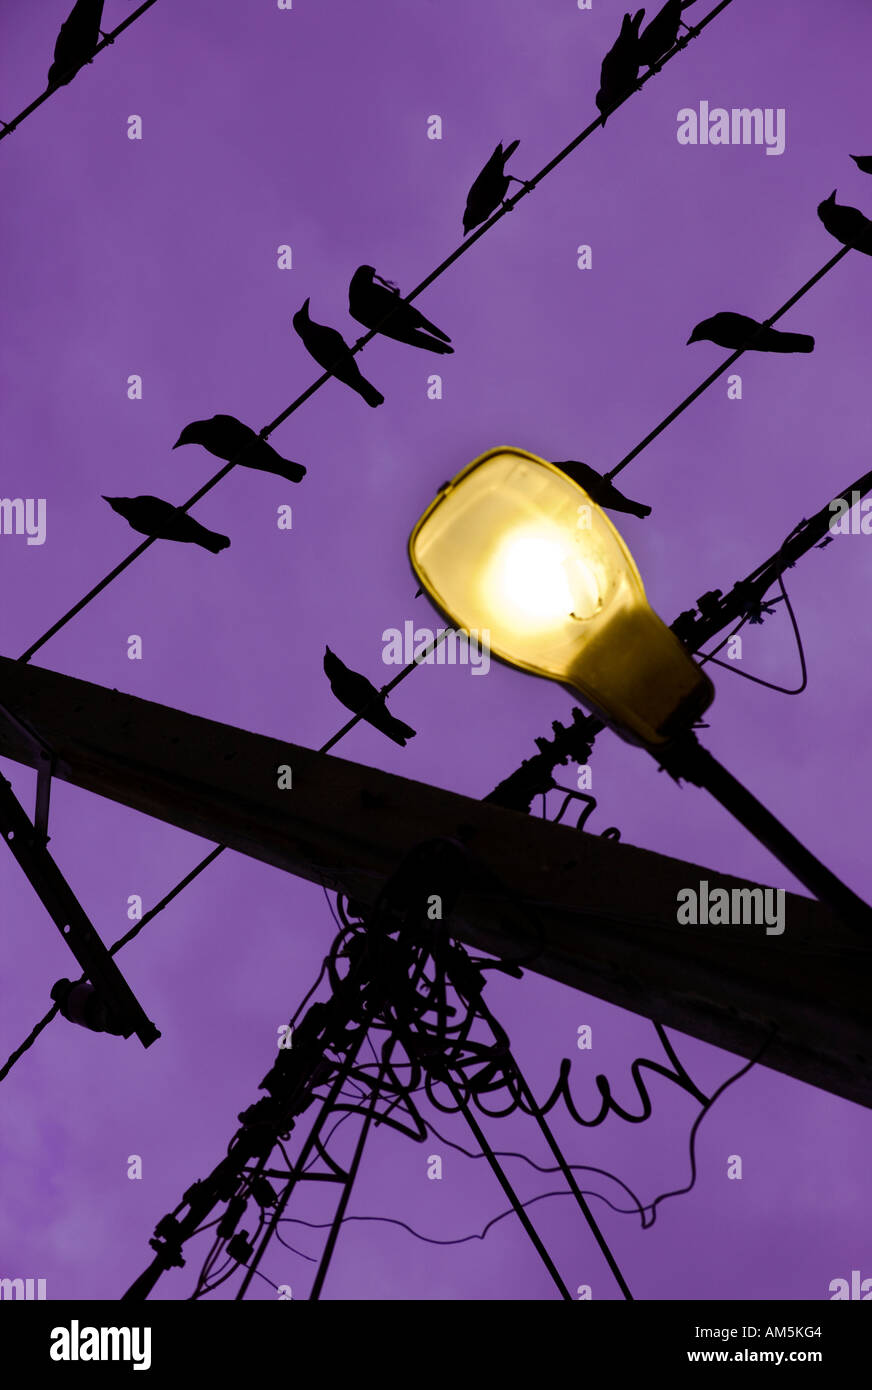 birds-on-a-wire-yellow-street-lamp-again